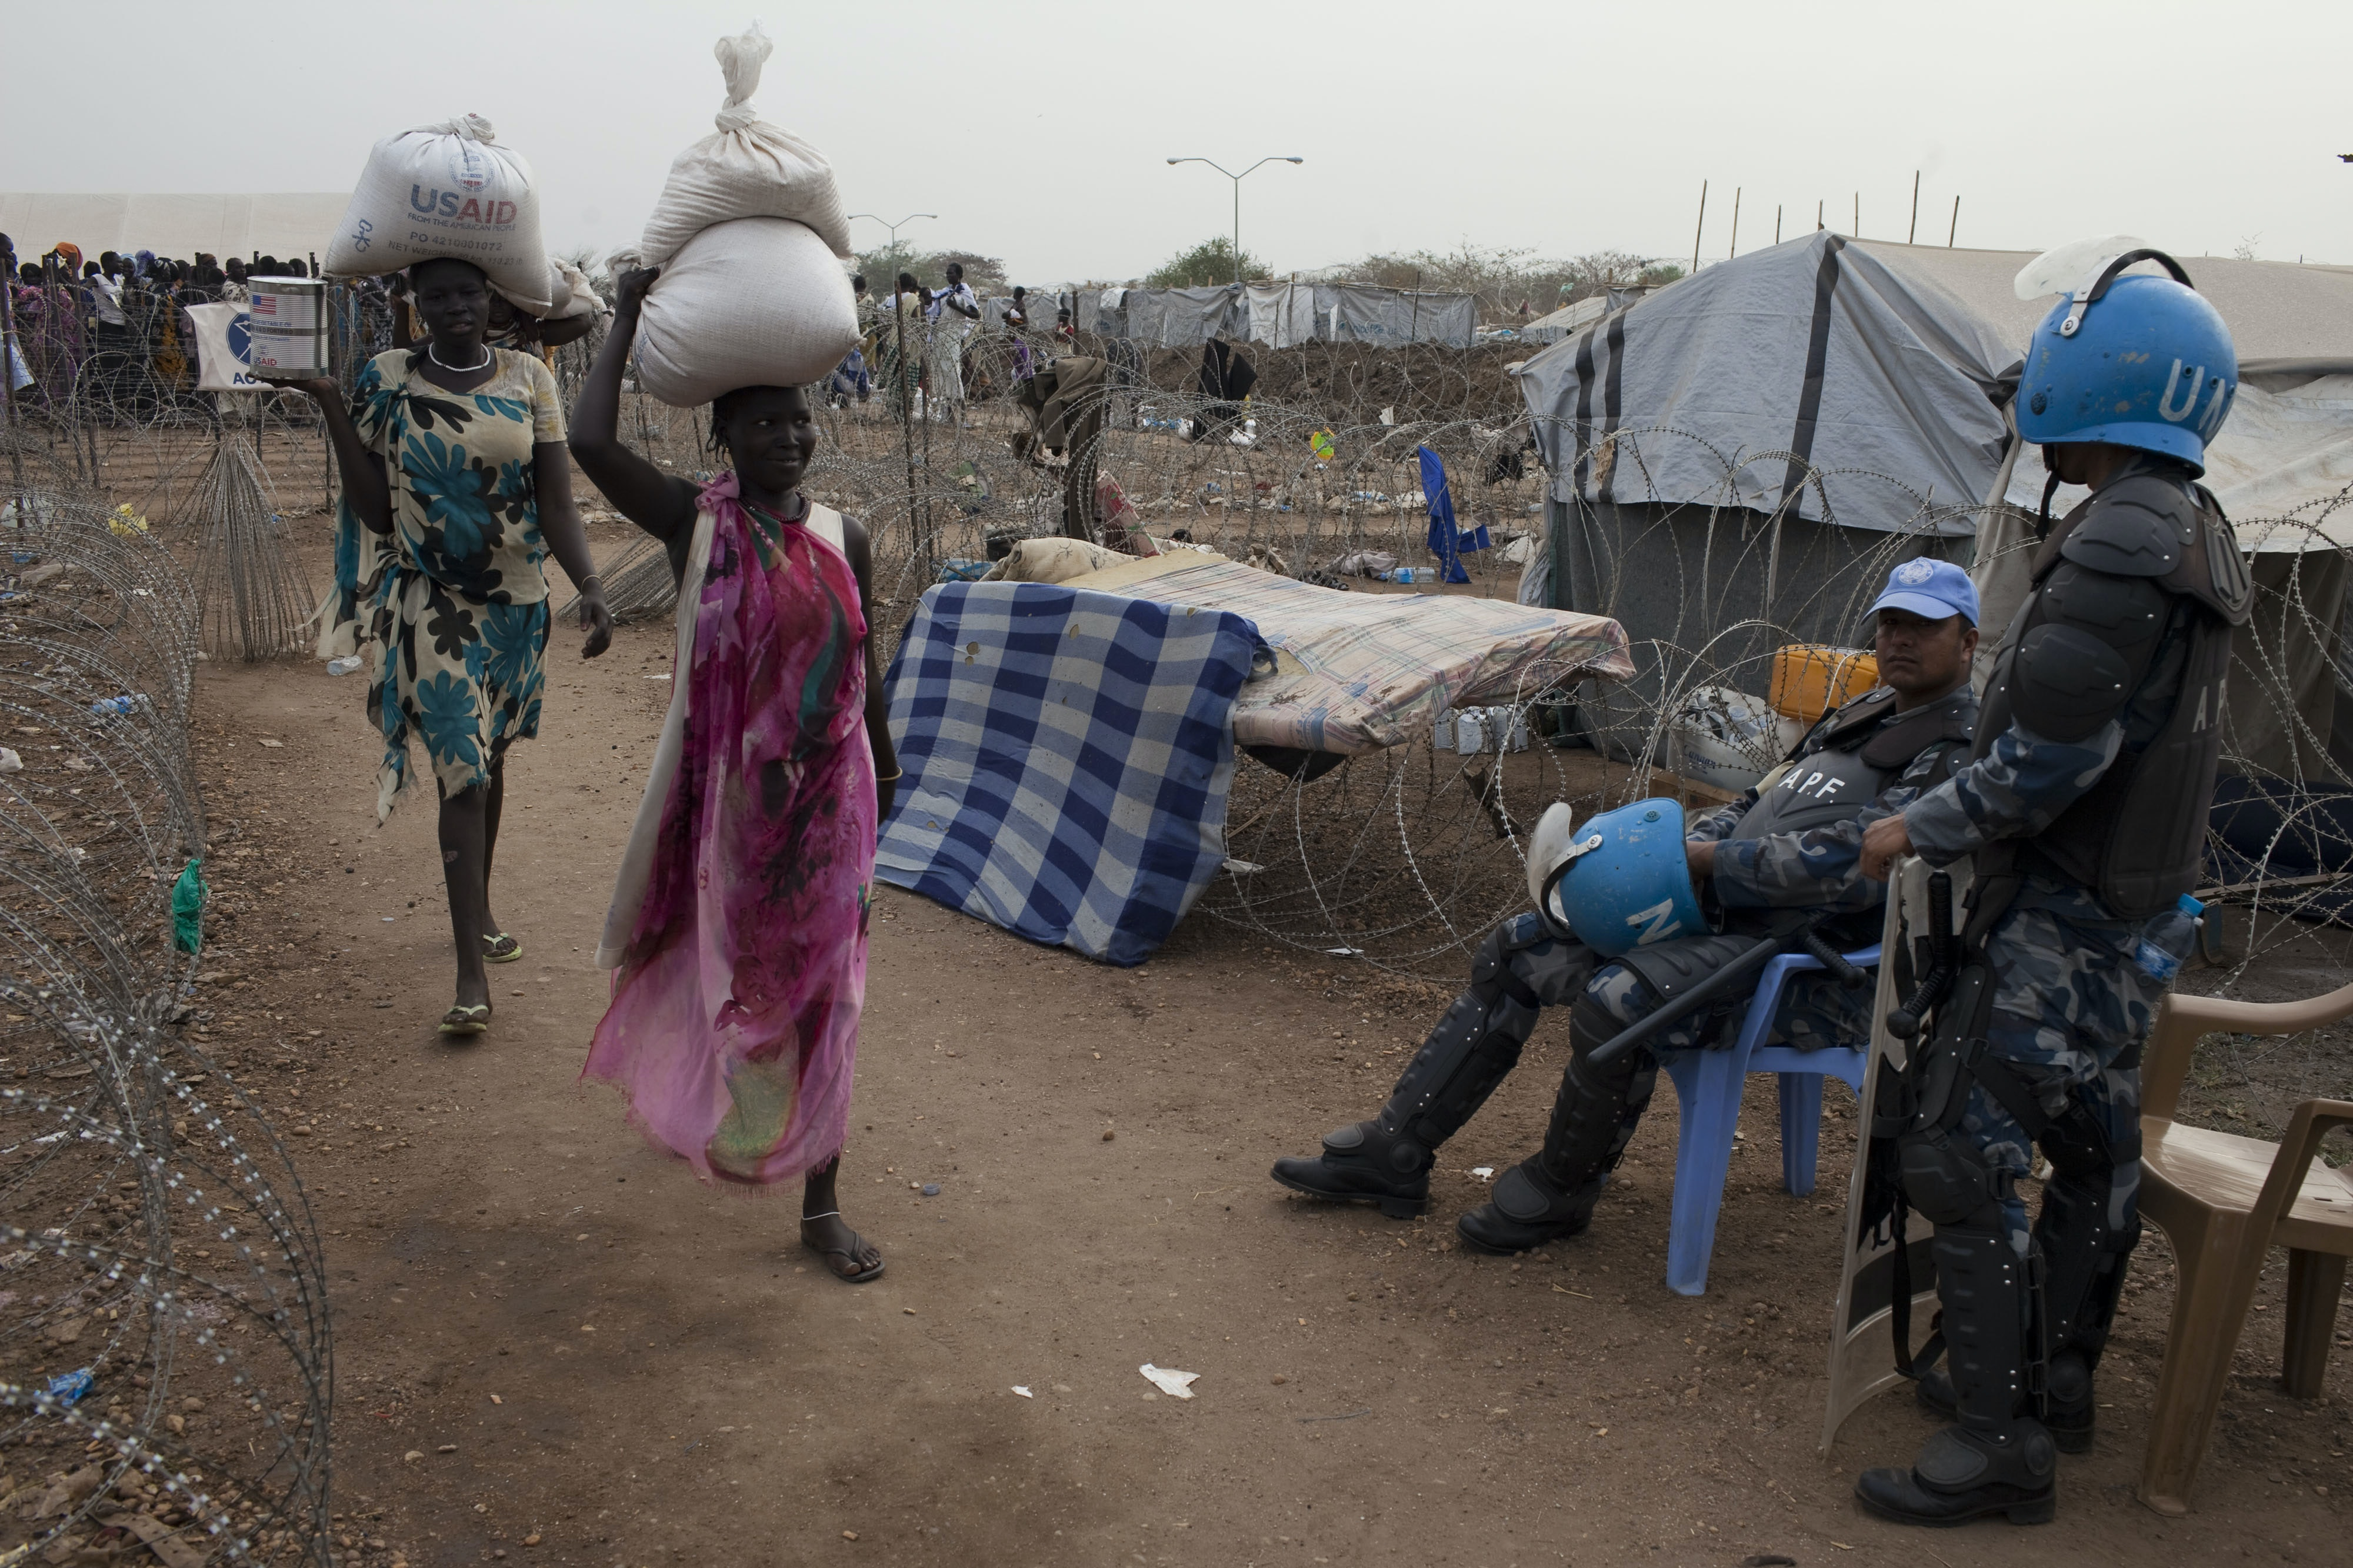 Dilemmas of peacekeeping: what we learnt from talking to people in South Sudan